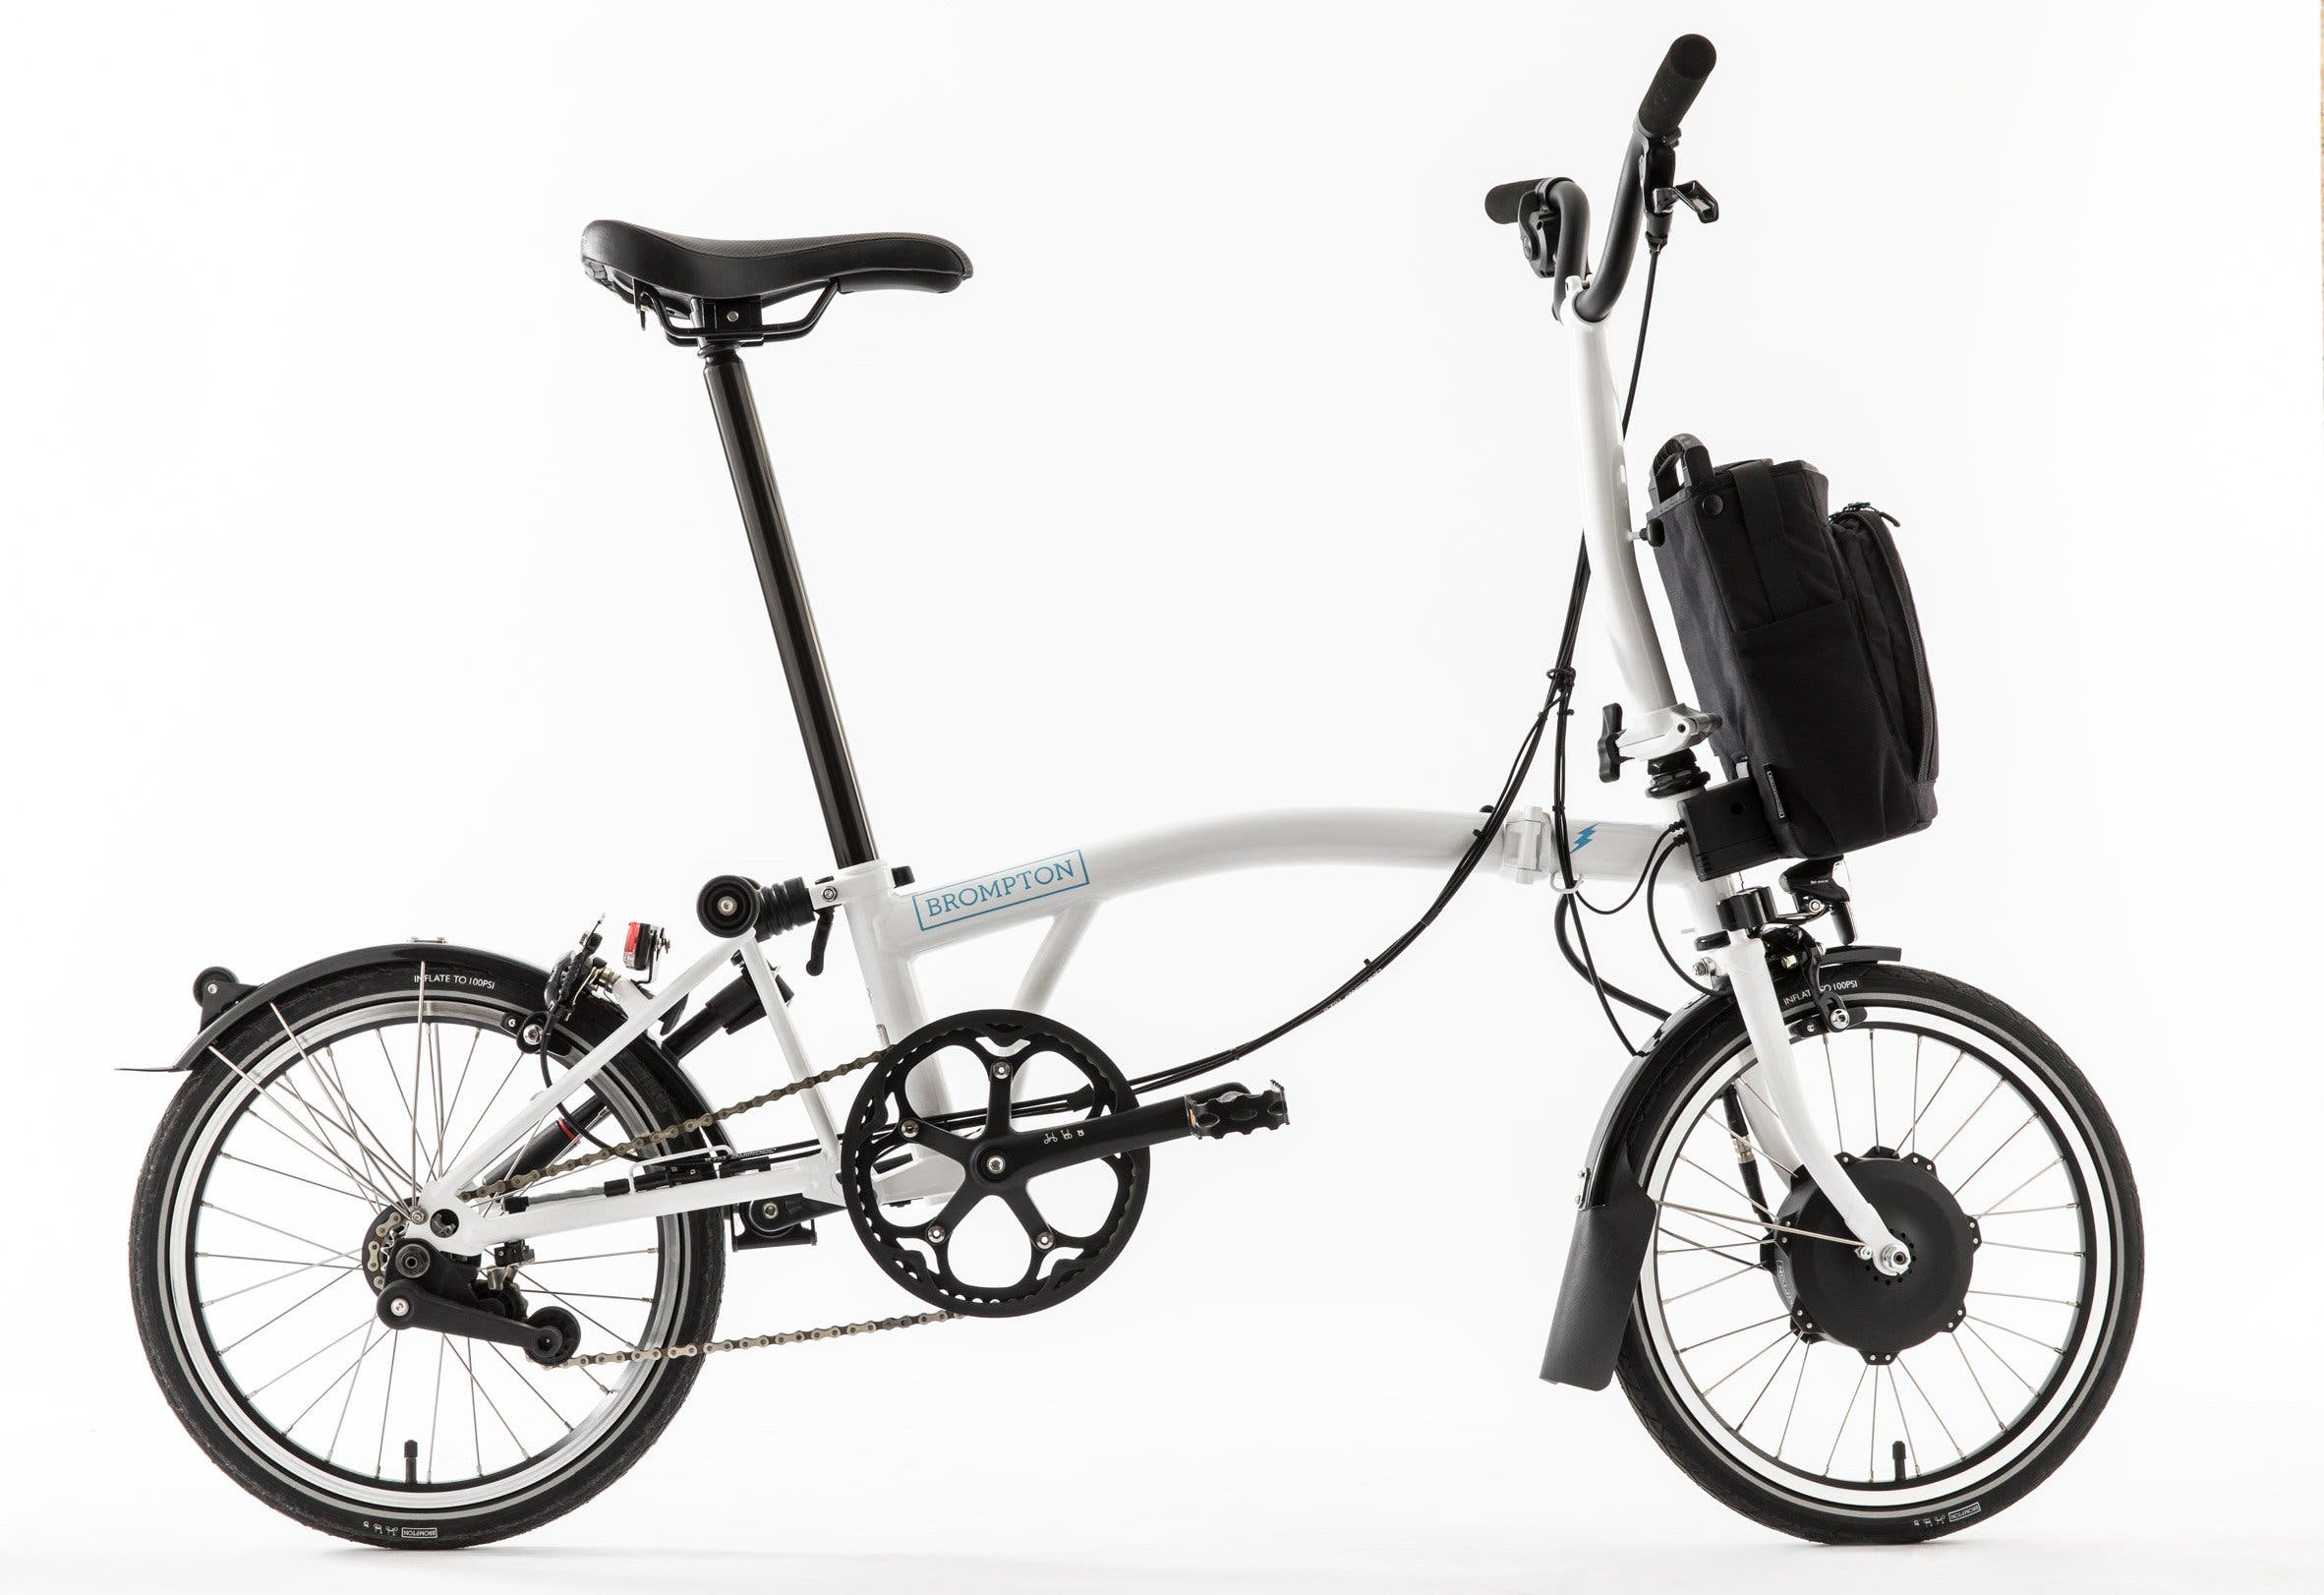 The Company Says Its Folding Electric Bicycle Is Most Technically Advanced Model It Has Ever Produced We Ve Spent Five Years Taking Williams Racing